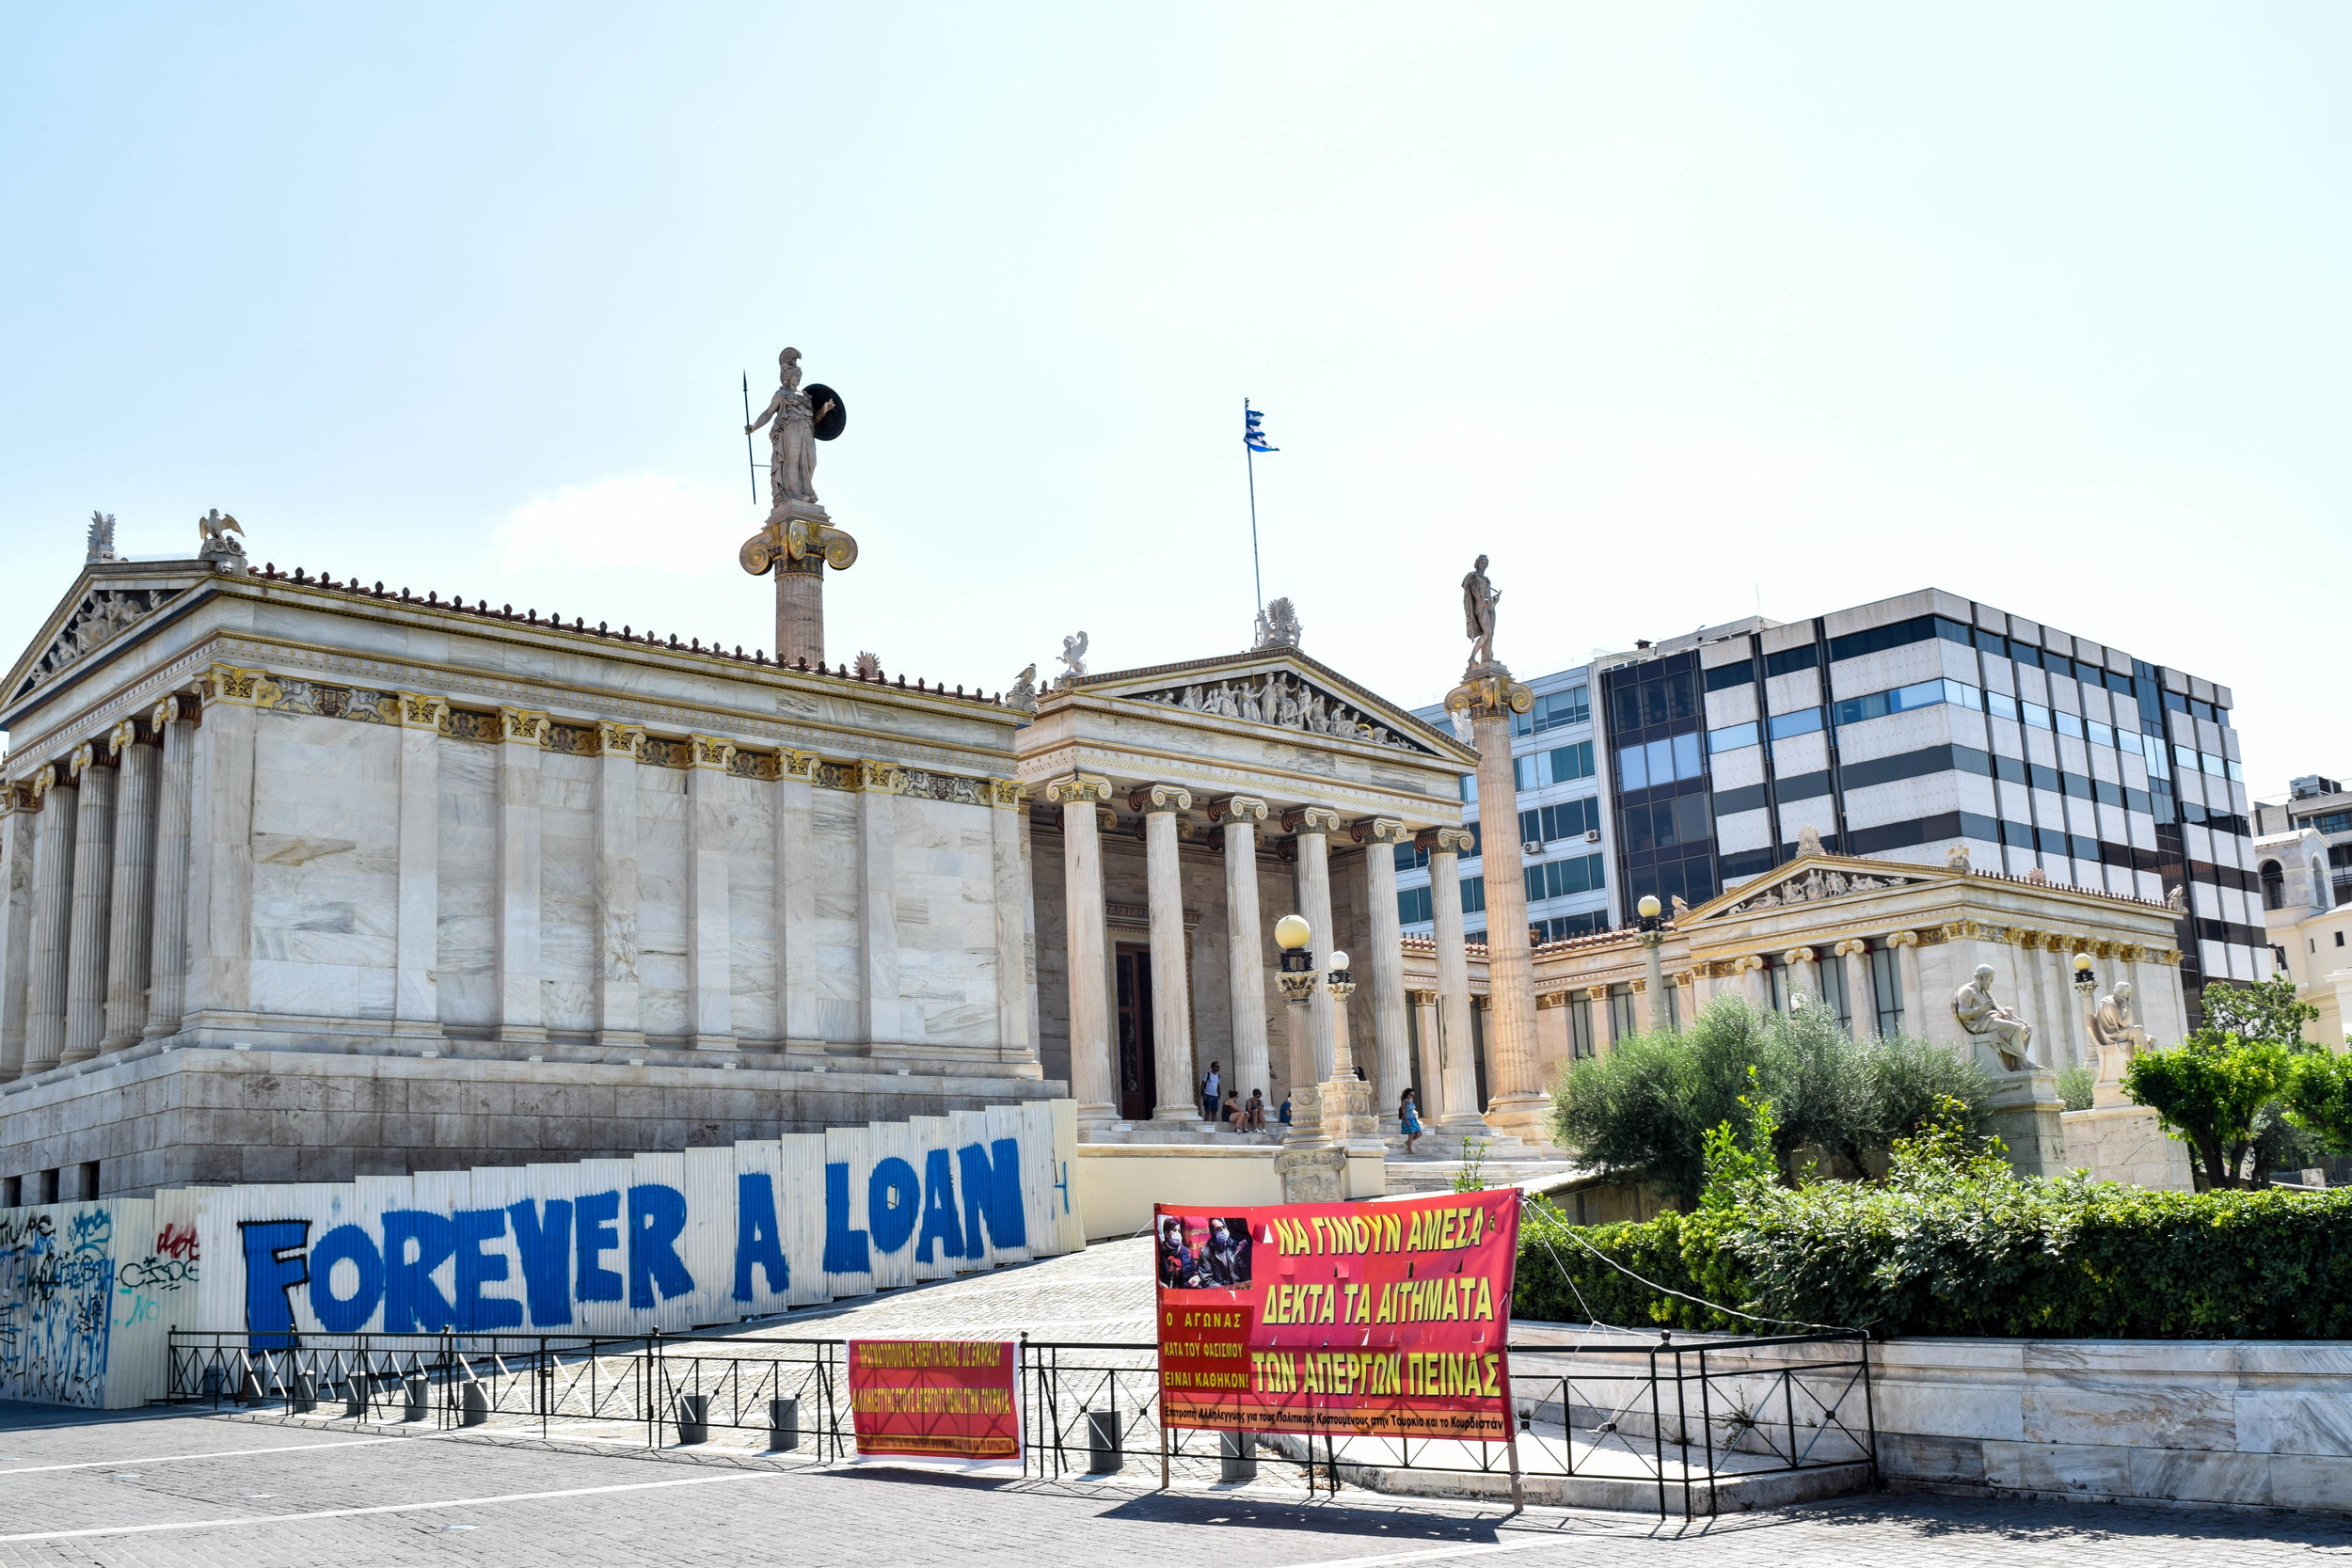 Athens in a nutshell: old buildings + financial crisis.